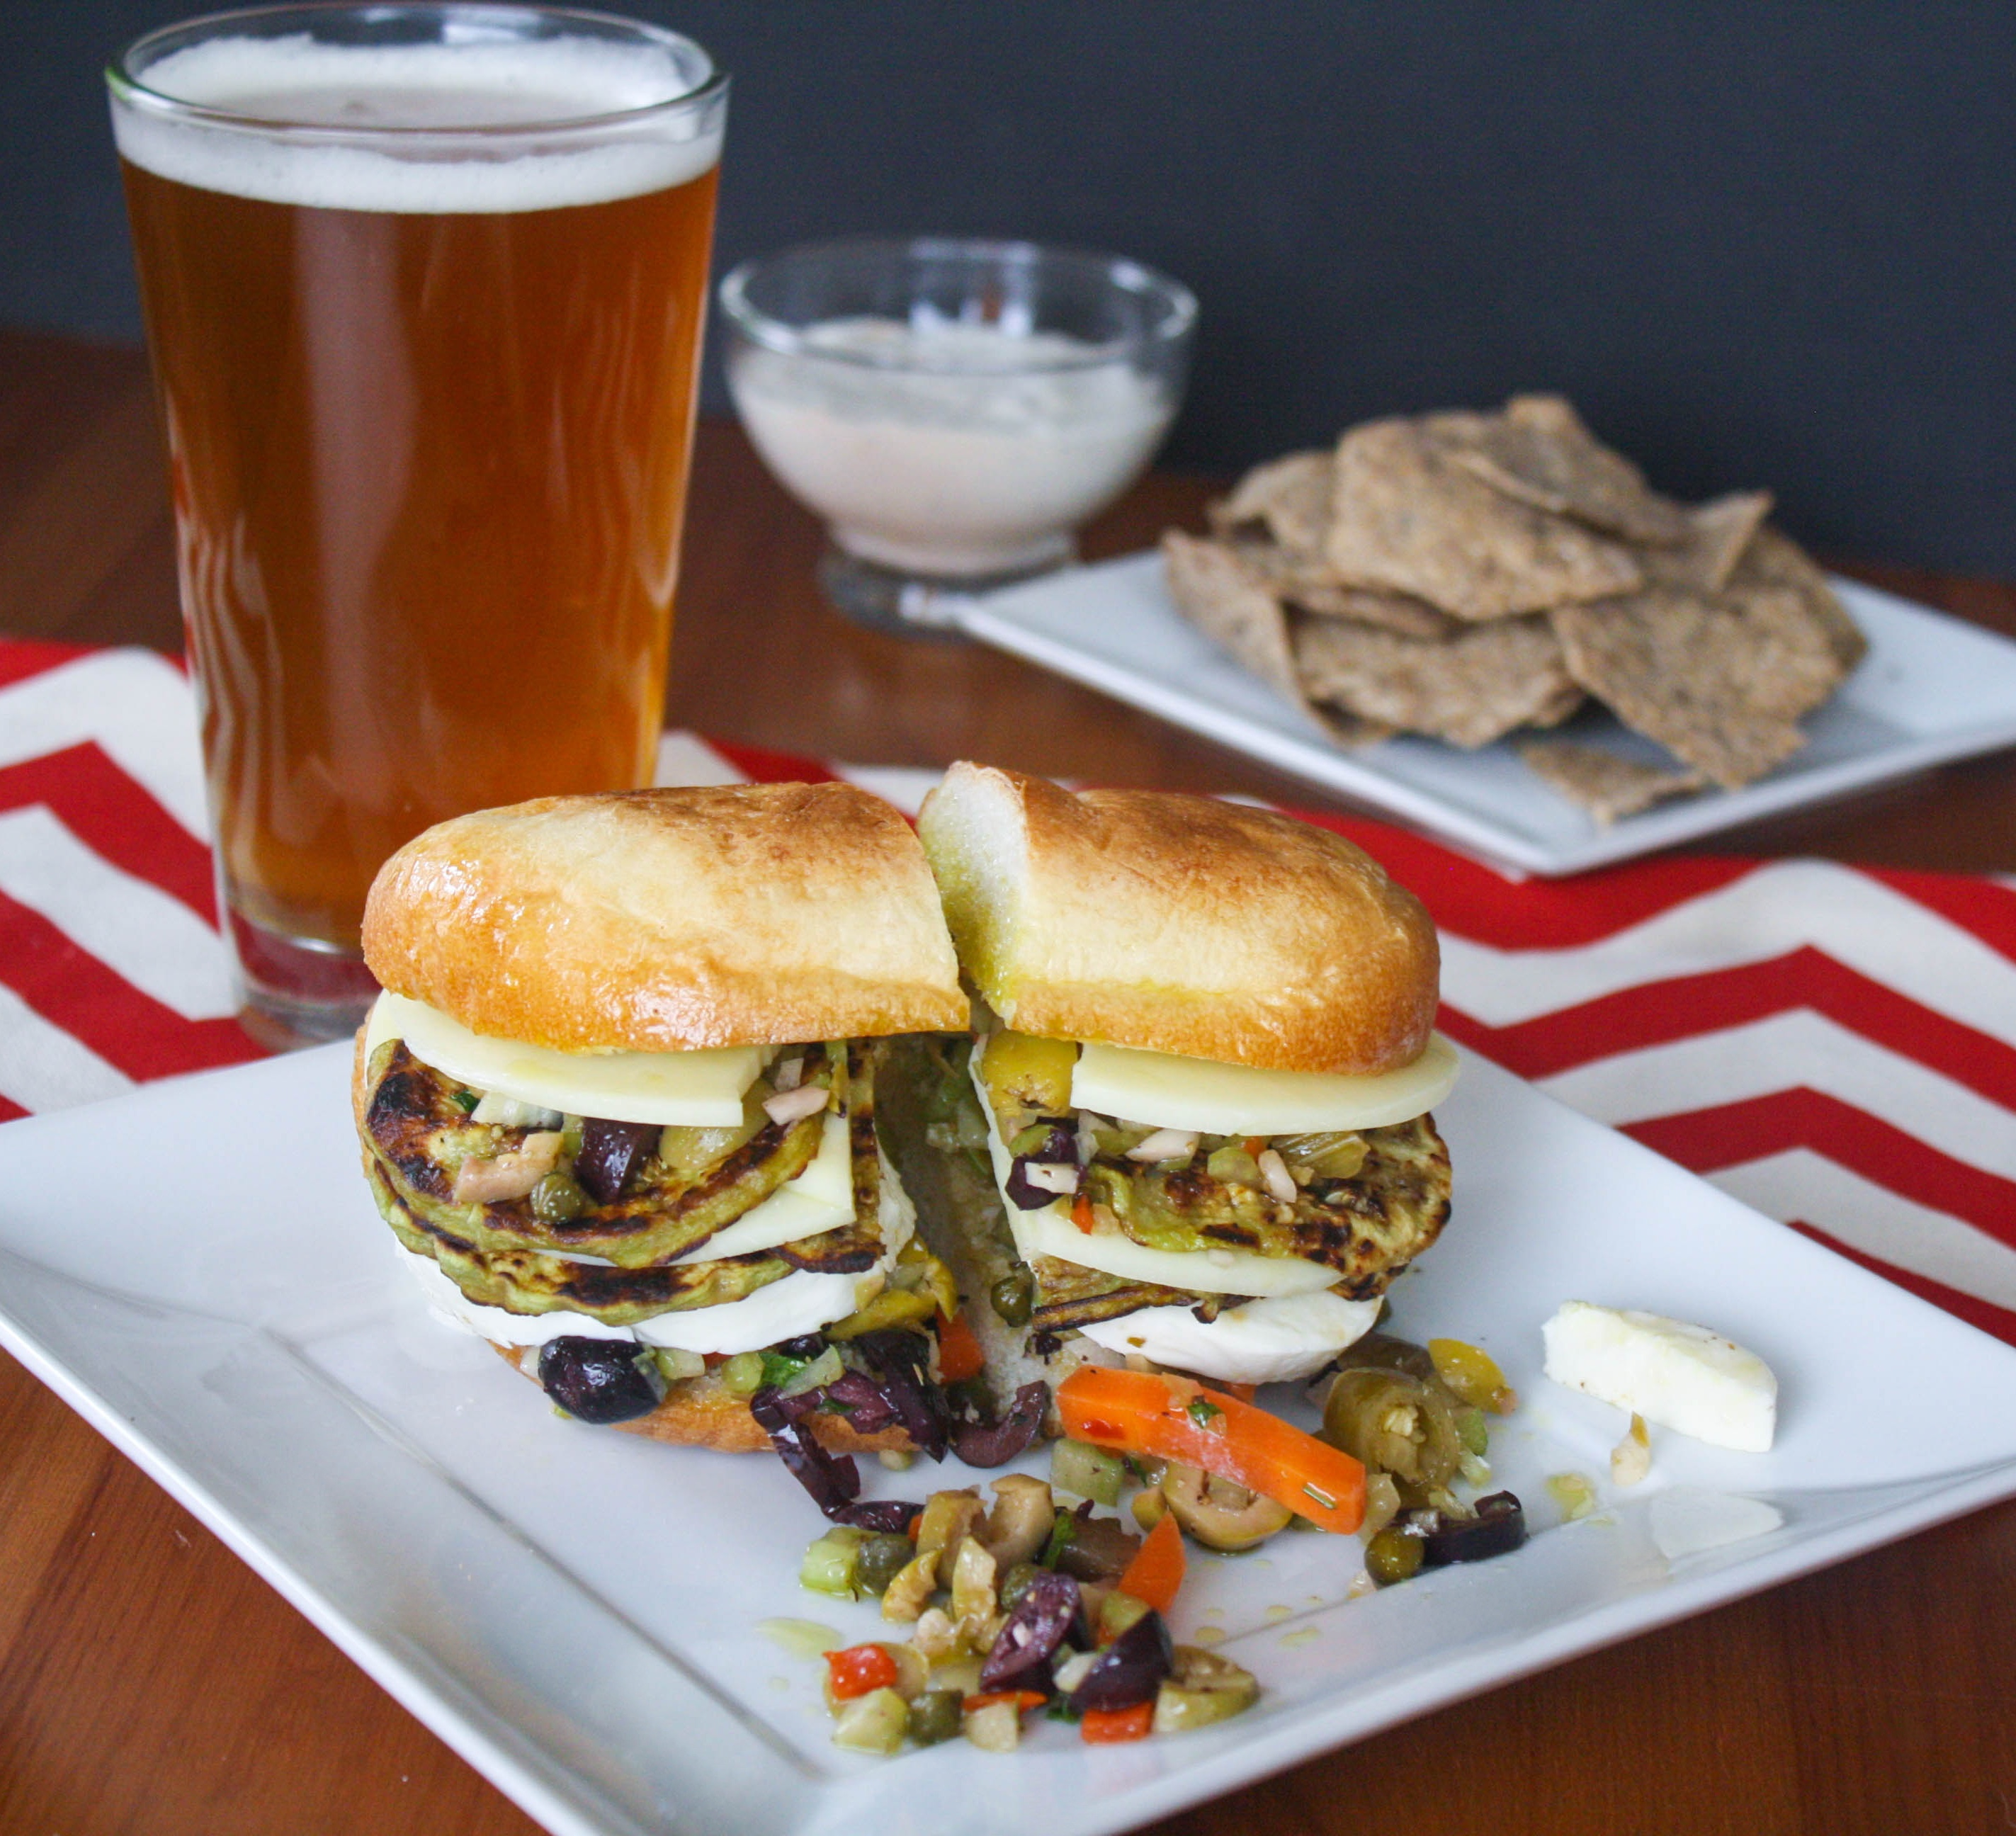 Eggplant Muffuletta Sandwiches make a fabulous meatless meal. These Eggplant Muffuletta Sandwiches are delicious and hearty for a fab meatless meal.